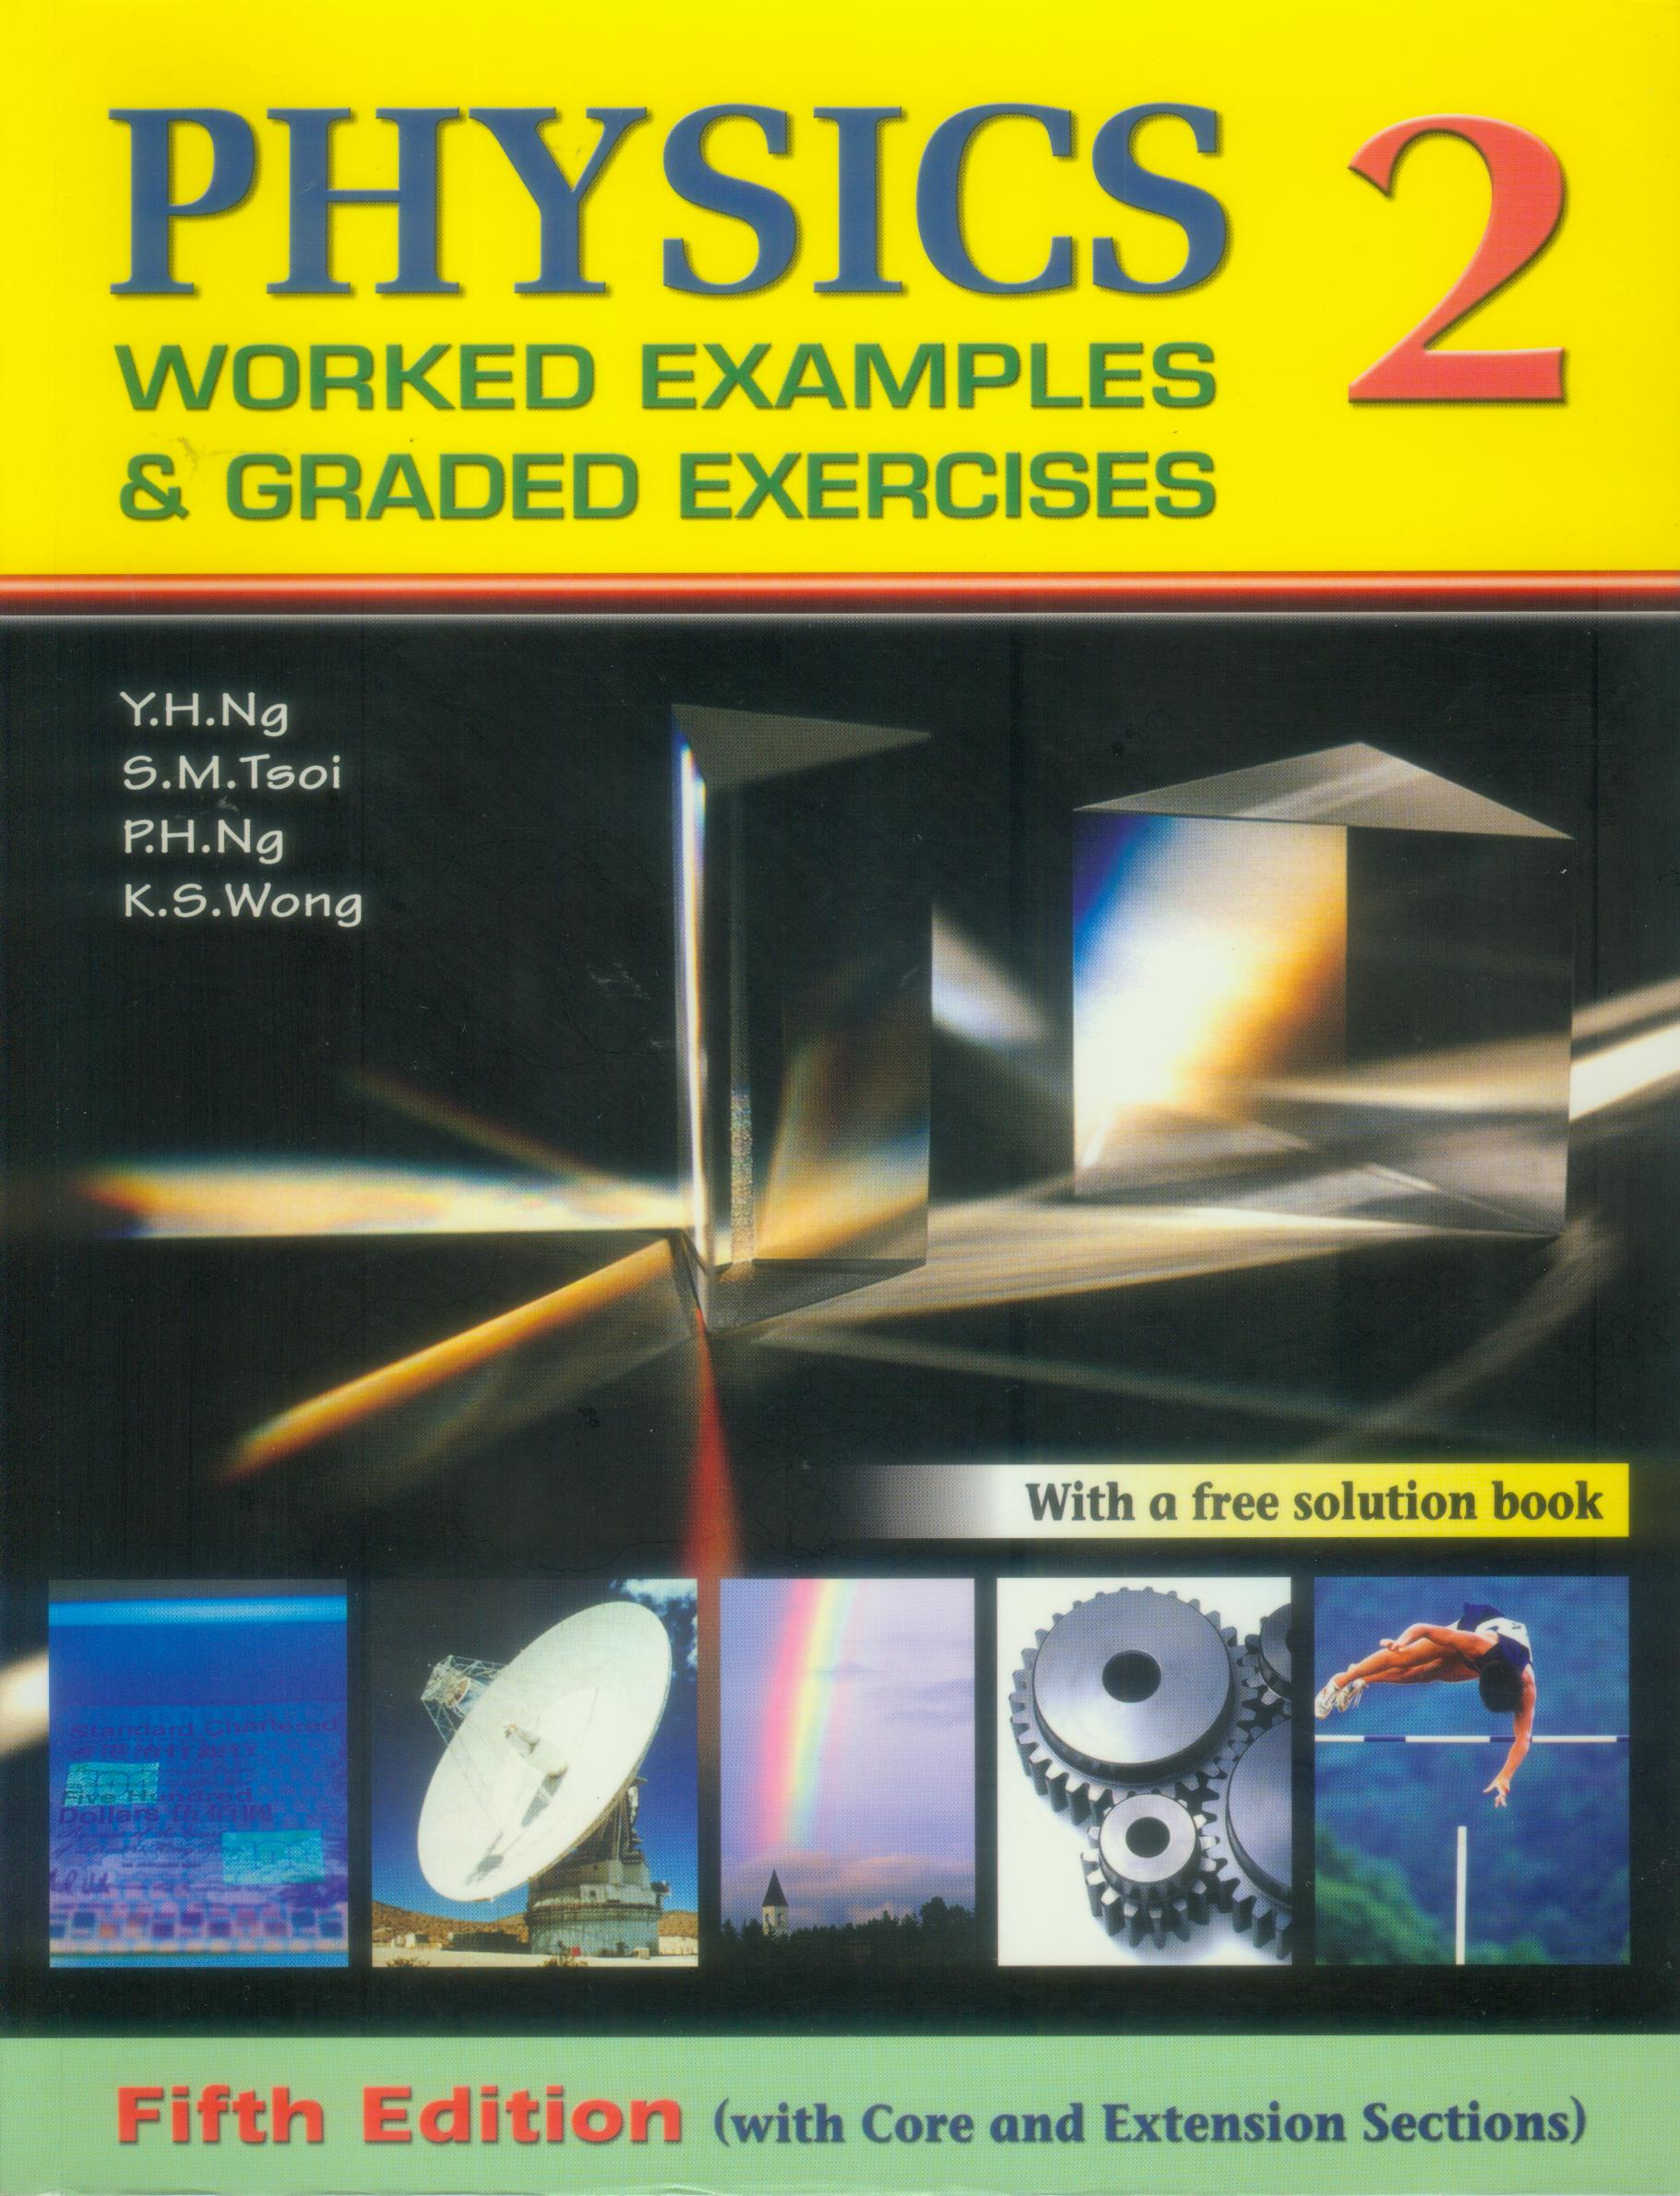 Physics 2 Worked Examples & Graded Ex 5E [PWE2 5E]